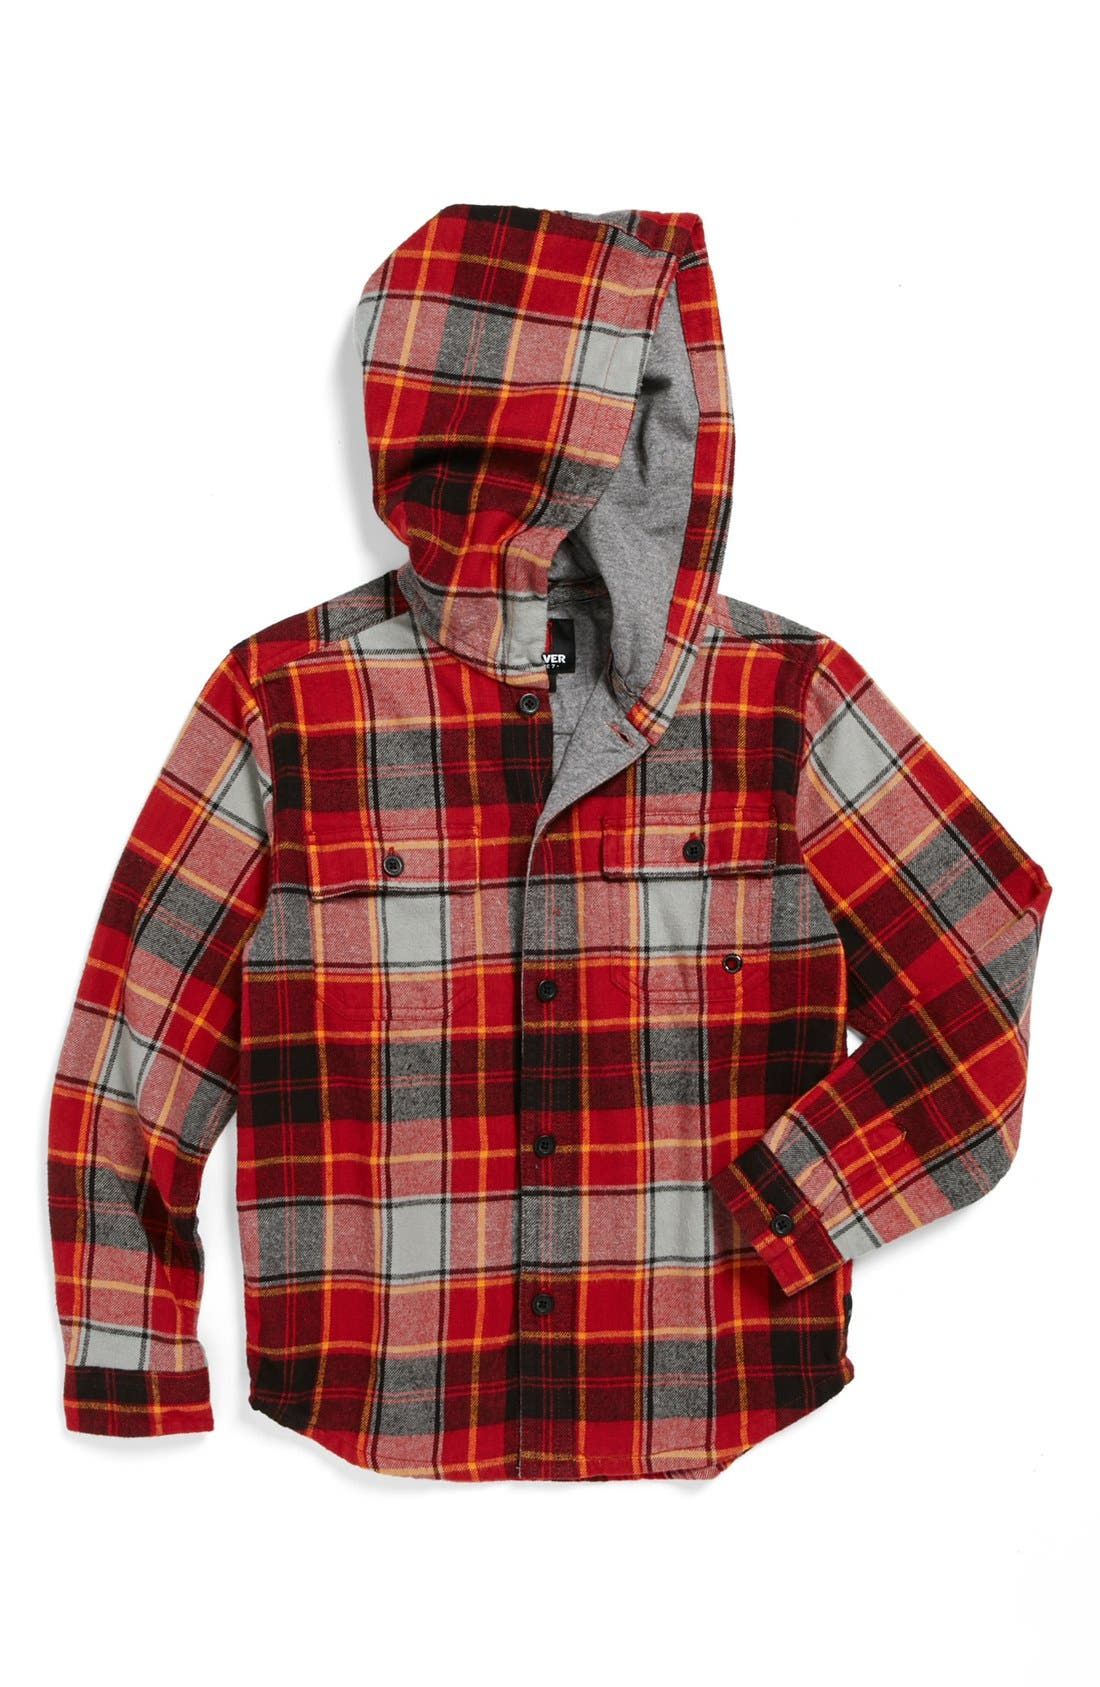 Alternate Image 1 Selected - Quiksilver 'Spray Face' Hooded Flannel Shirt (Big Boys)